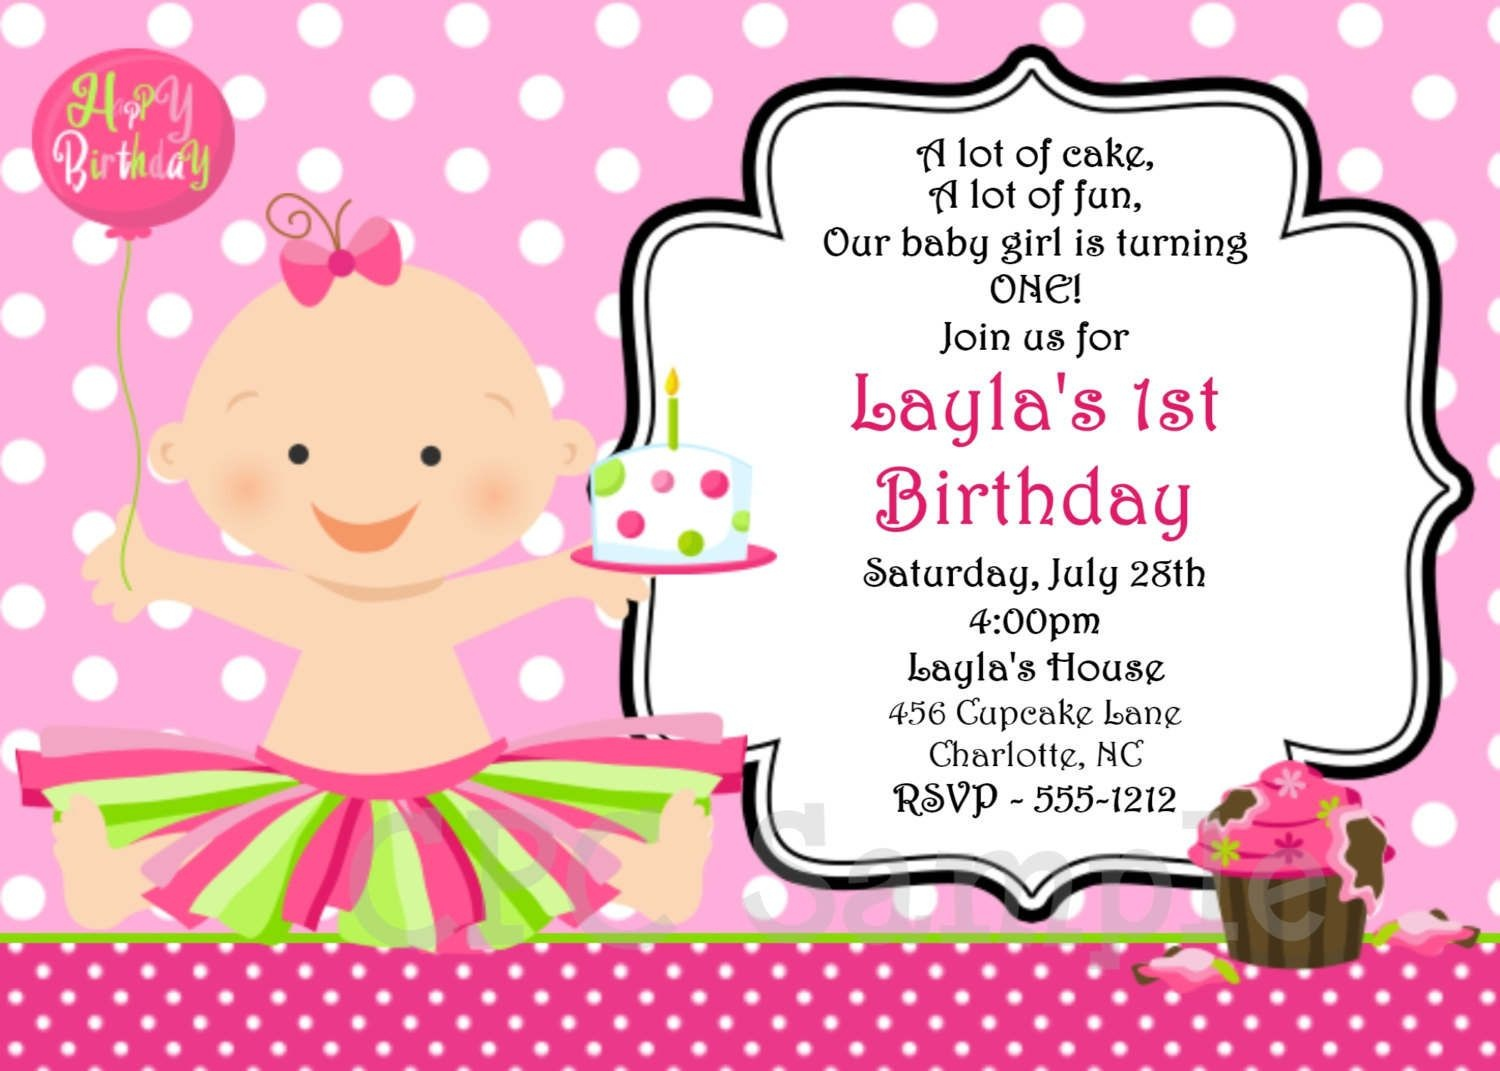 Party Invitation Online Maker Free - Demir.iso-Consulting.co - Make Printable Party Invitations Online Free